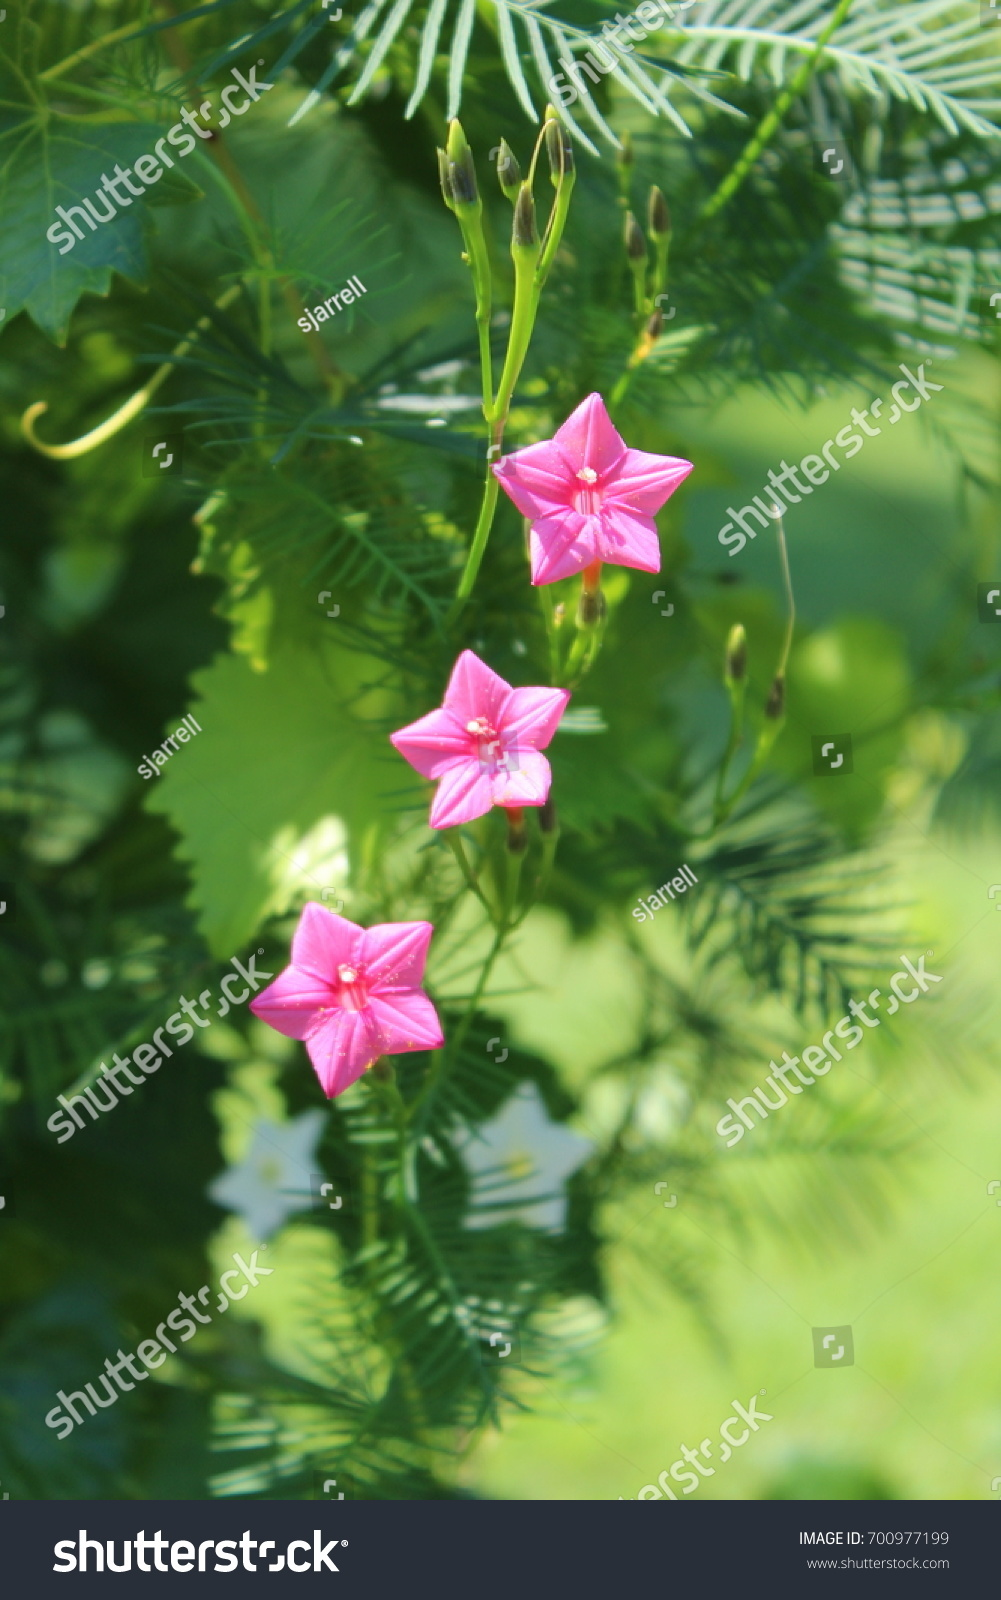 Delicate Climbing Pink Flower Garden Vines Stock Photo Edit Now